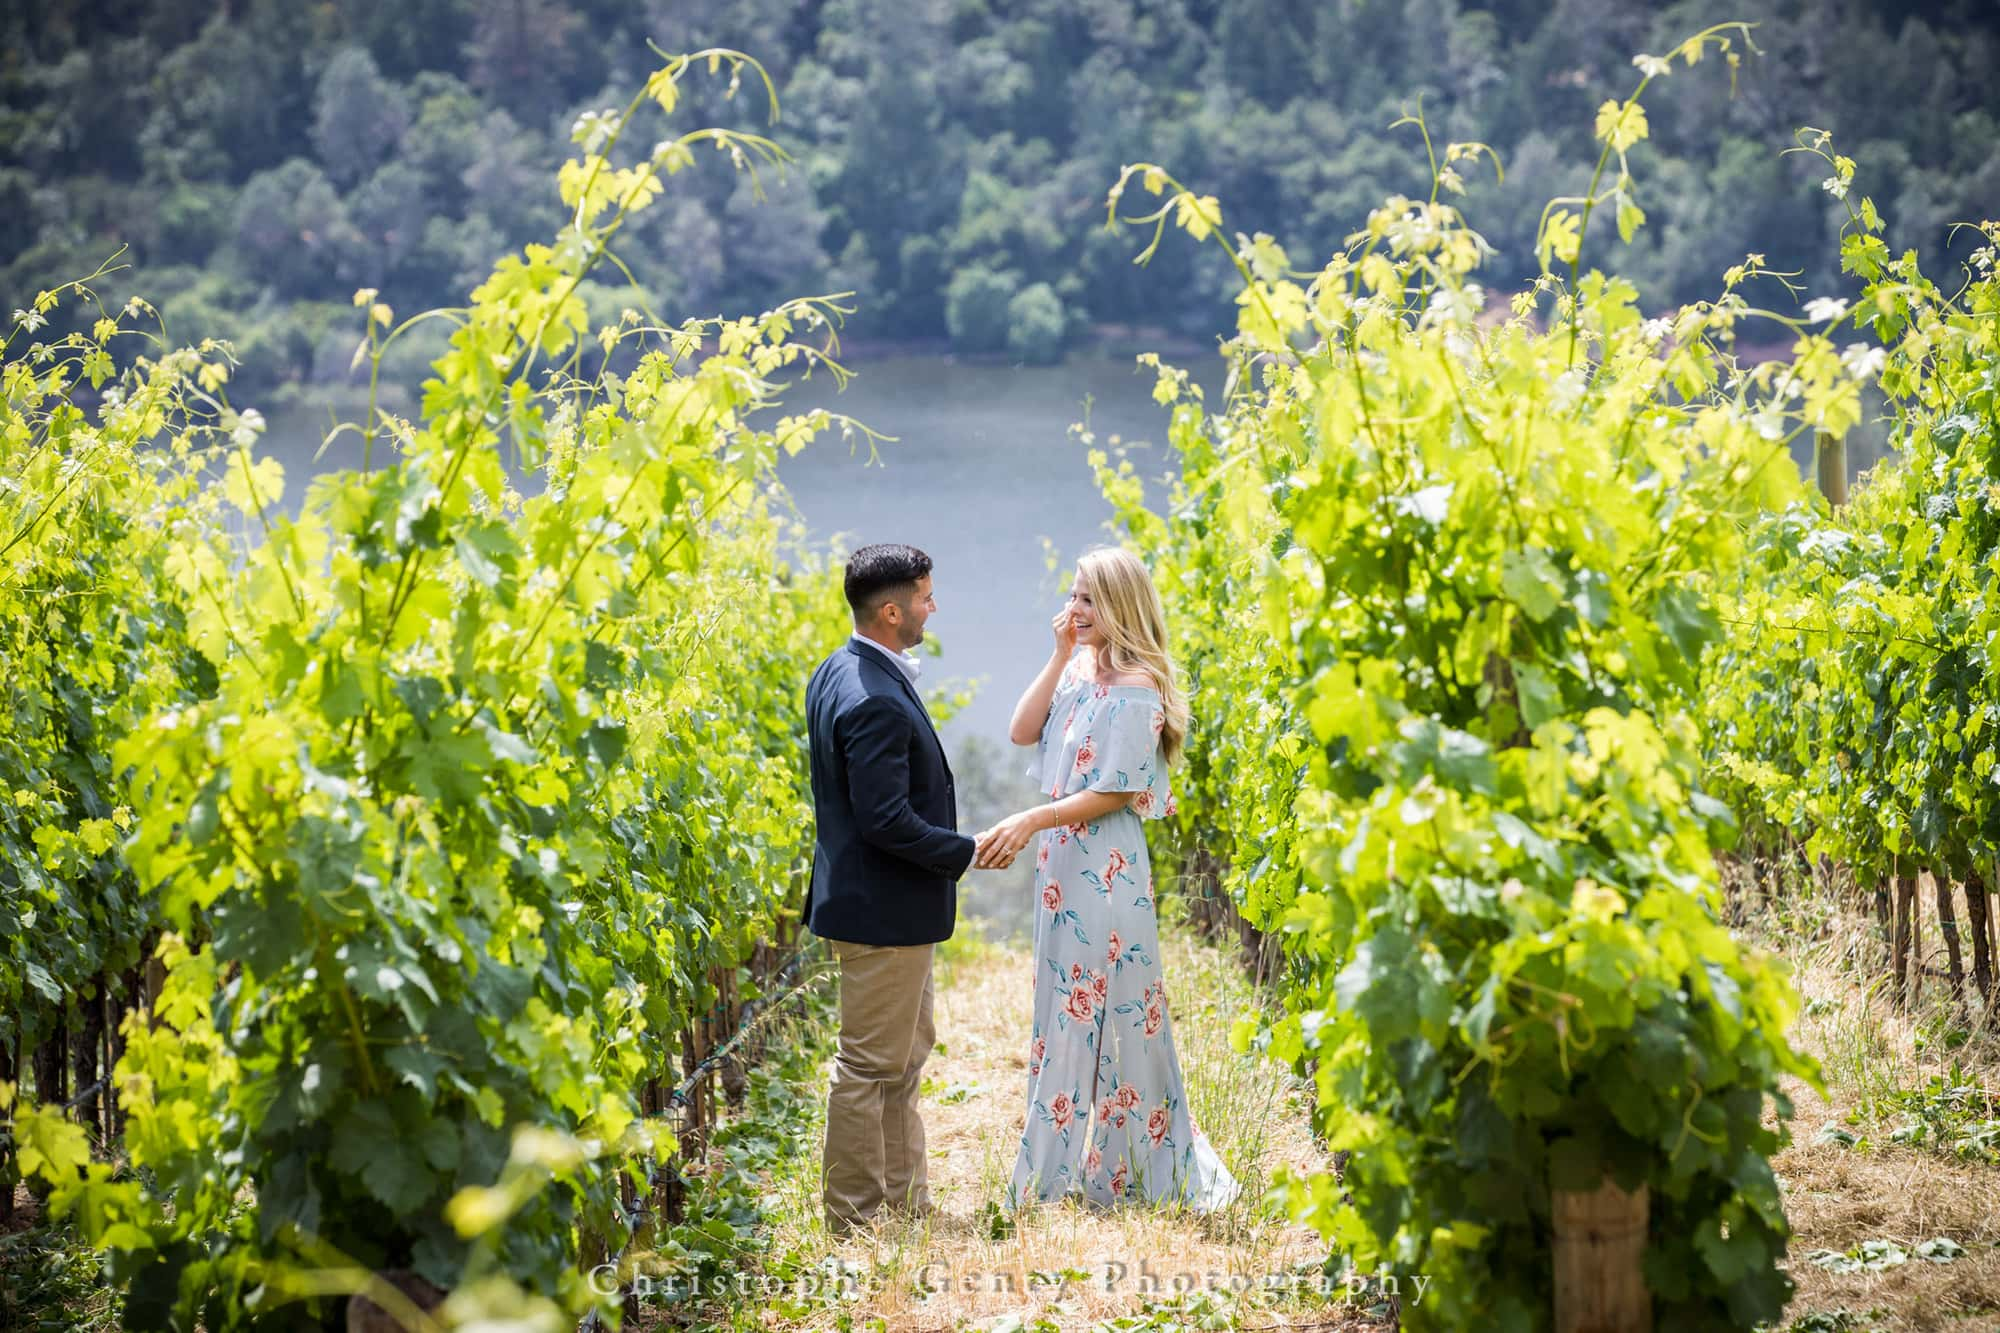 Marriage Proposal Photography in Napa -1005